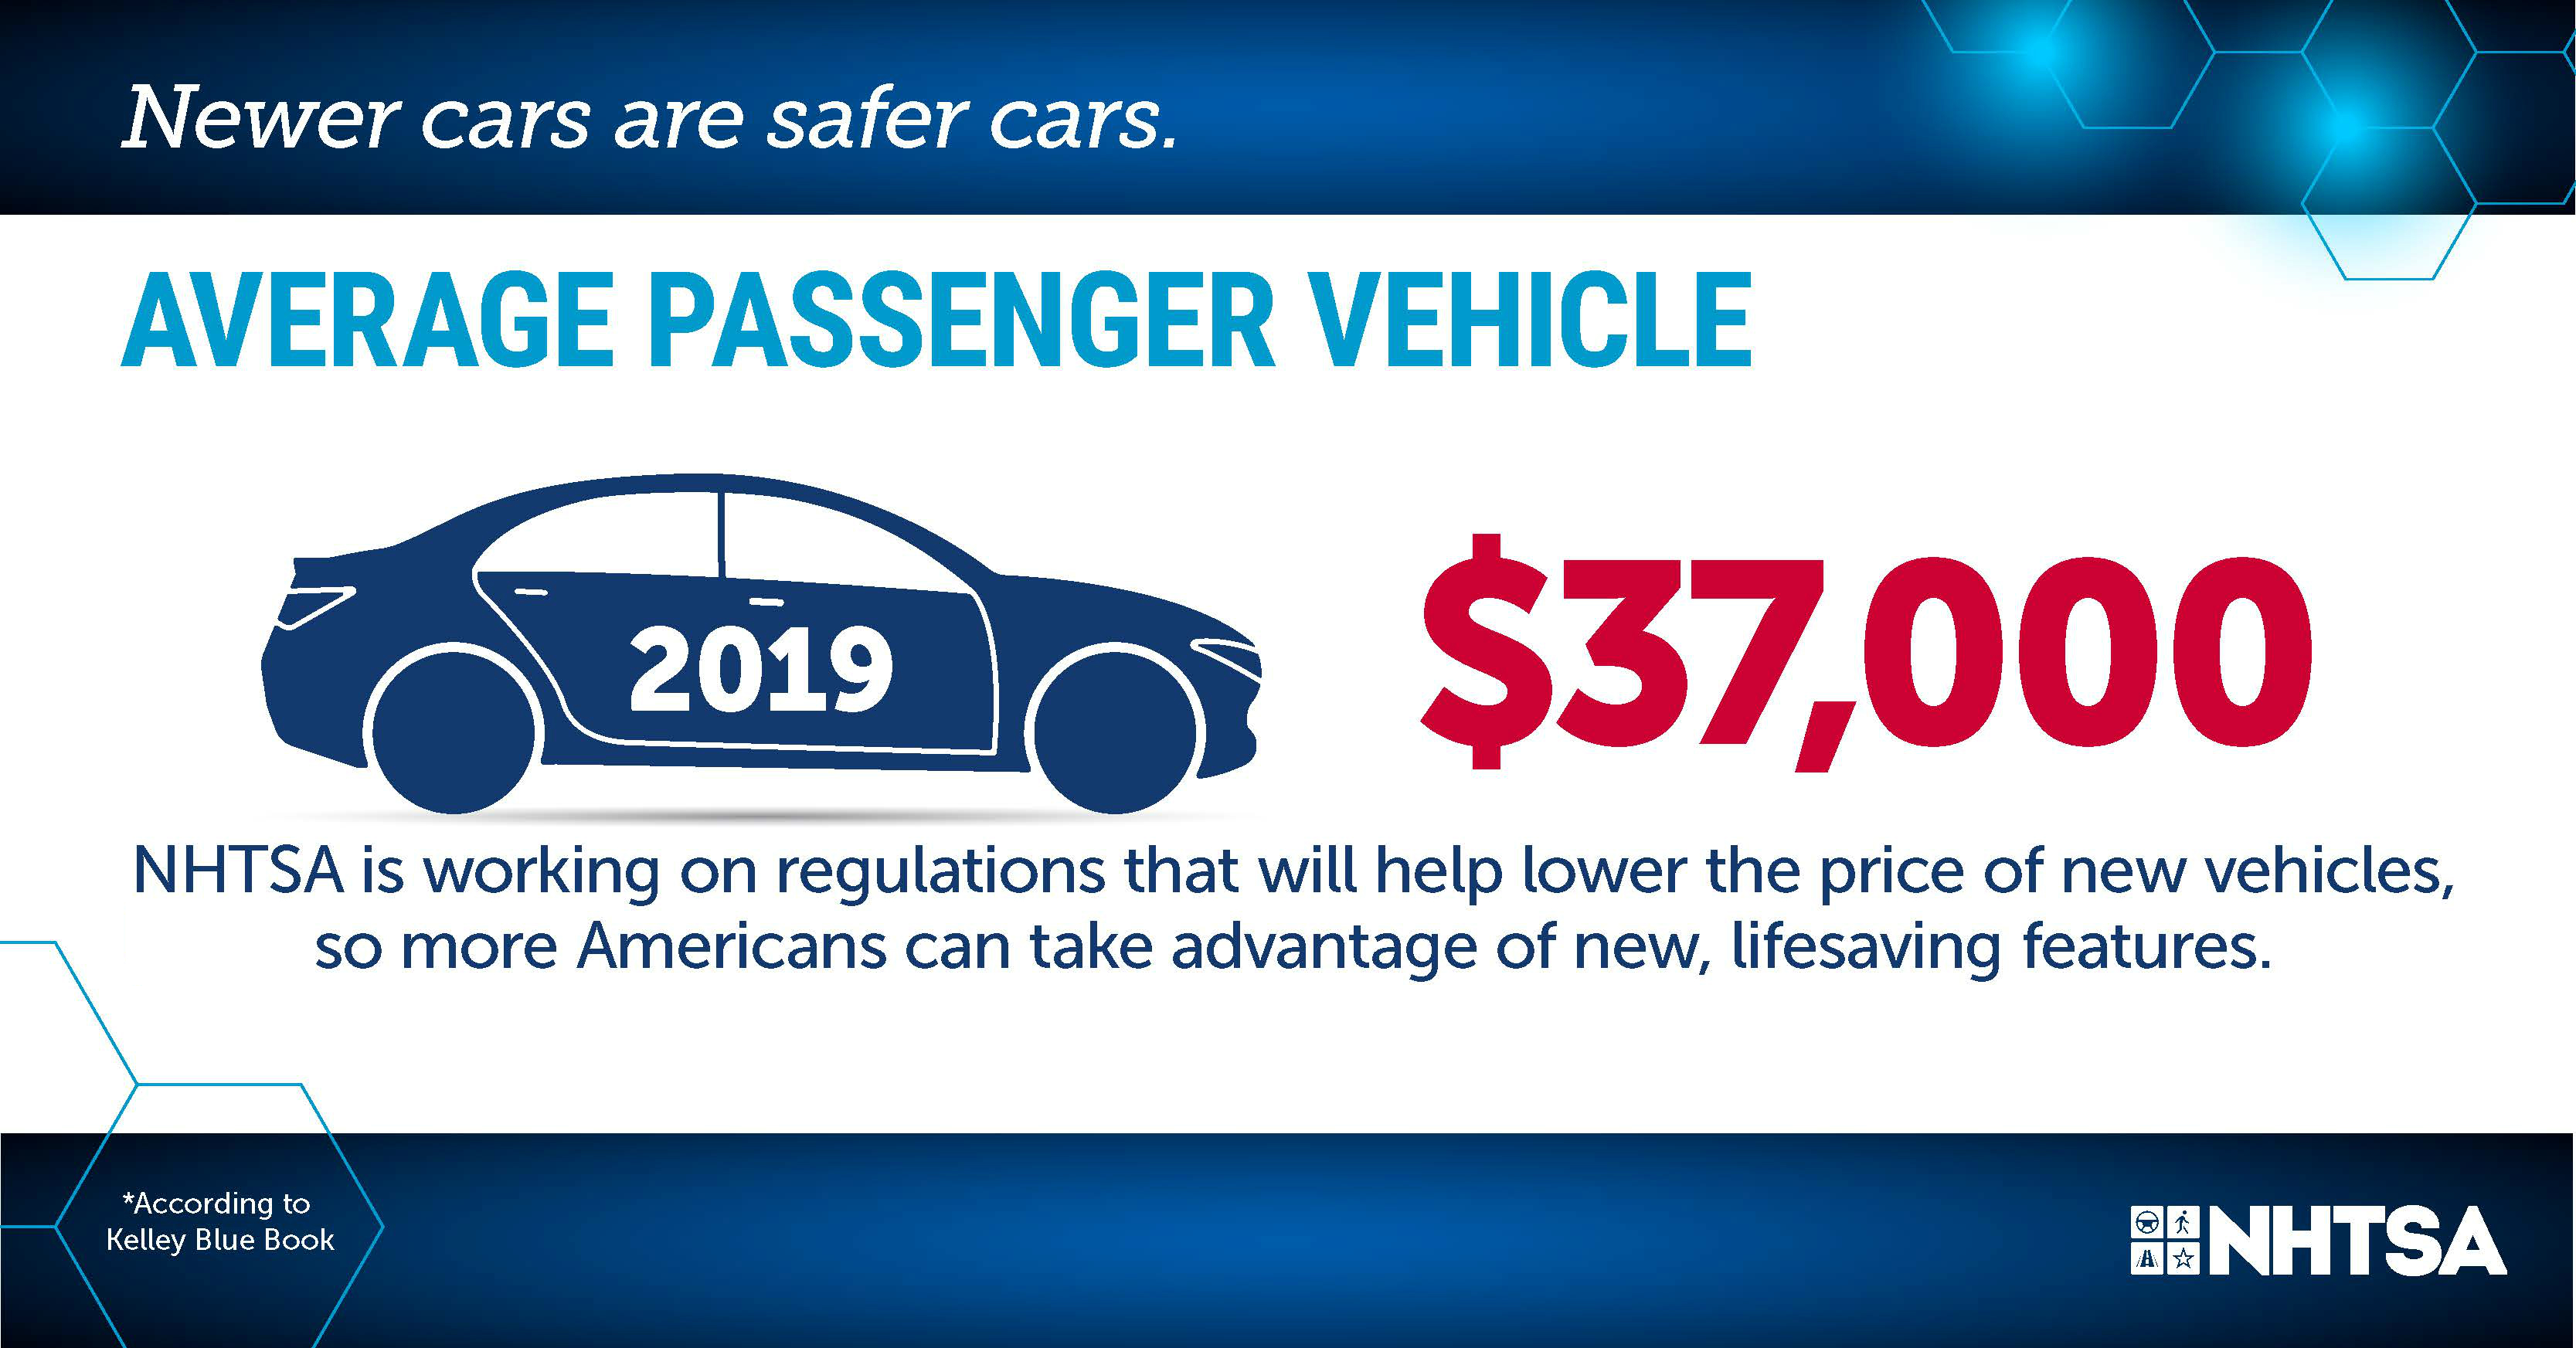 Infographic, average passenger vehicle in 2019, $37,000. NHTSA is working on regulations that will help lower the price of new vehicles, so more Americans can take advantage of new, lifesaving features.